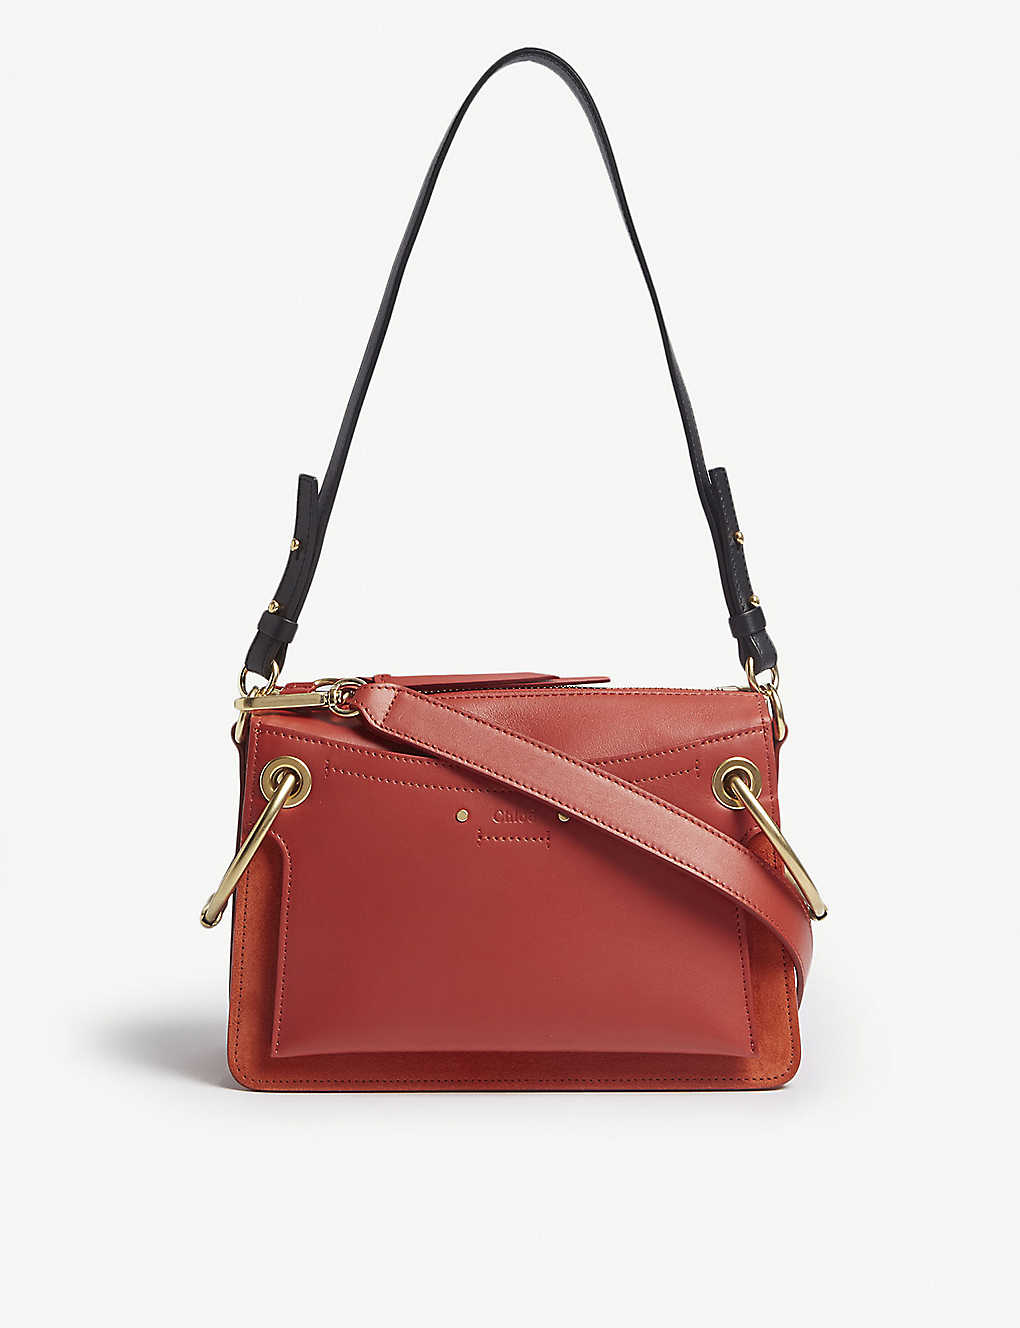 a4da5c7ad9c5 CHLOE - Roy small leather shoulder bag